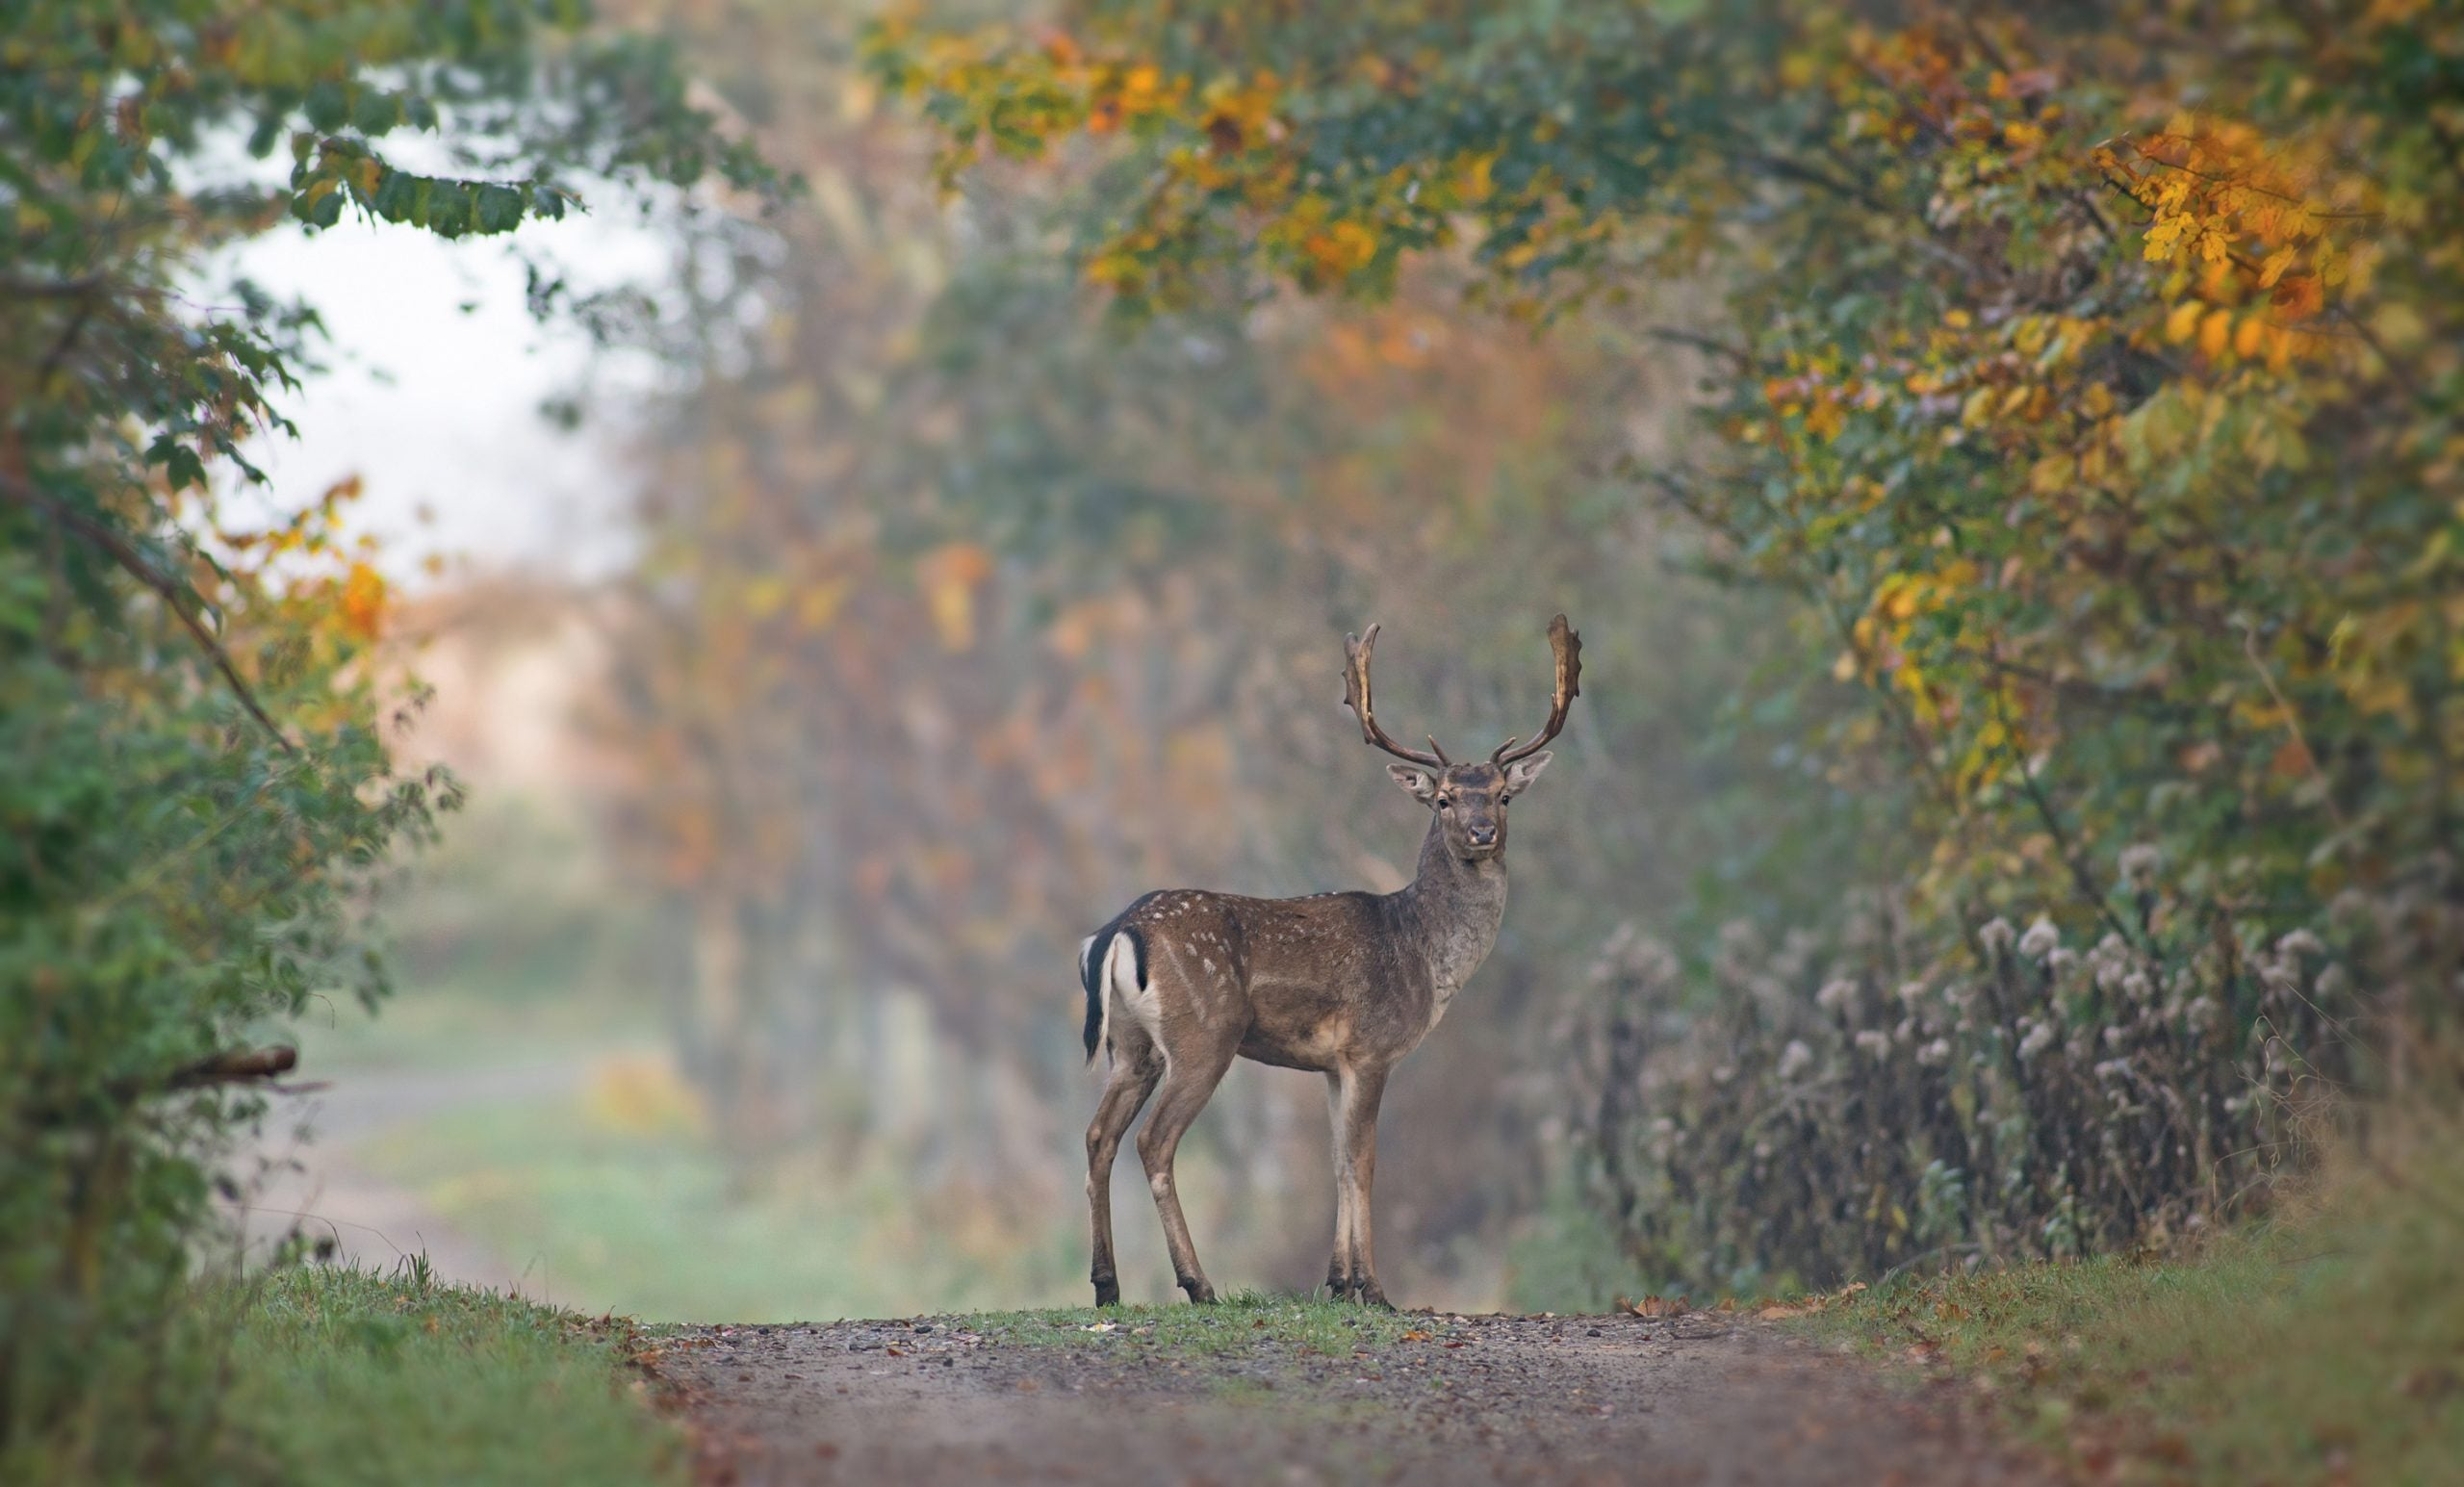 Watching the deer from my window, I realised there is a lesson to learn from the lockdown